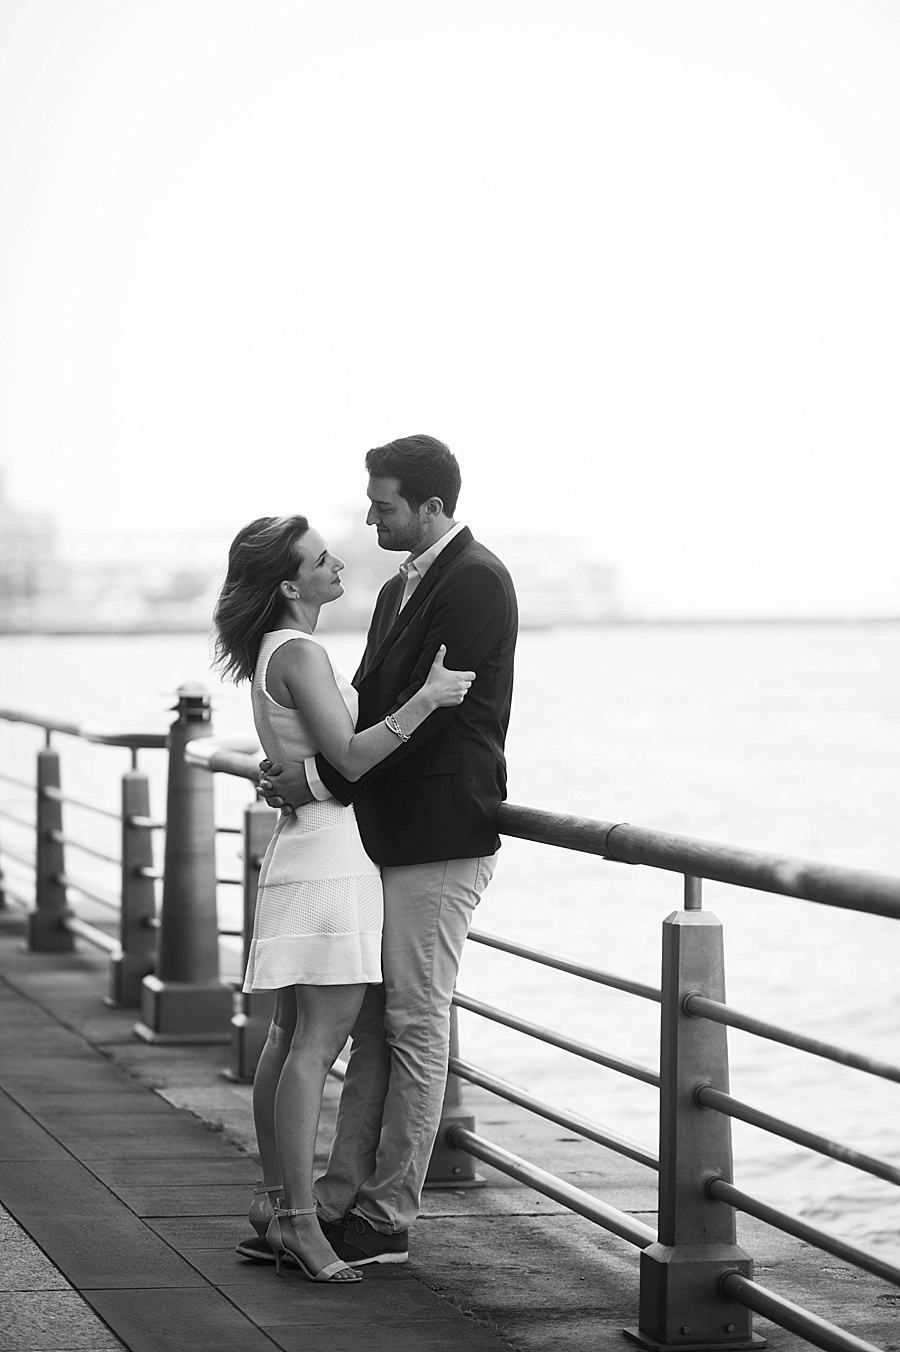 Meatpacking_NYC_Engagement_Session_SE_019.jpg